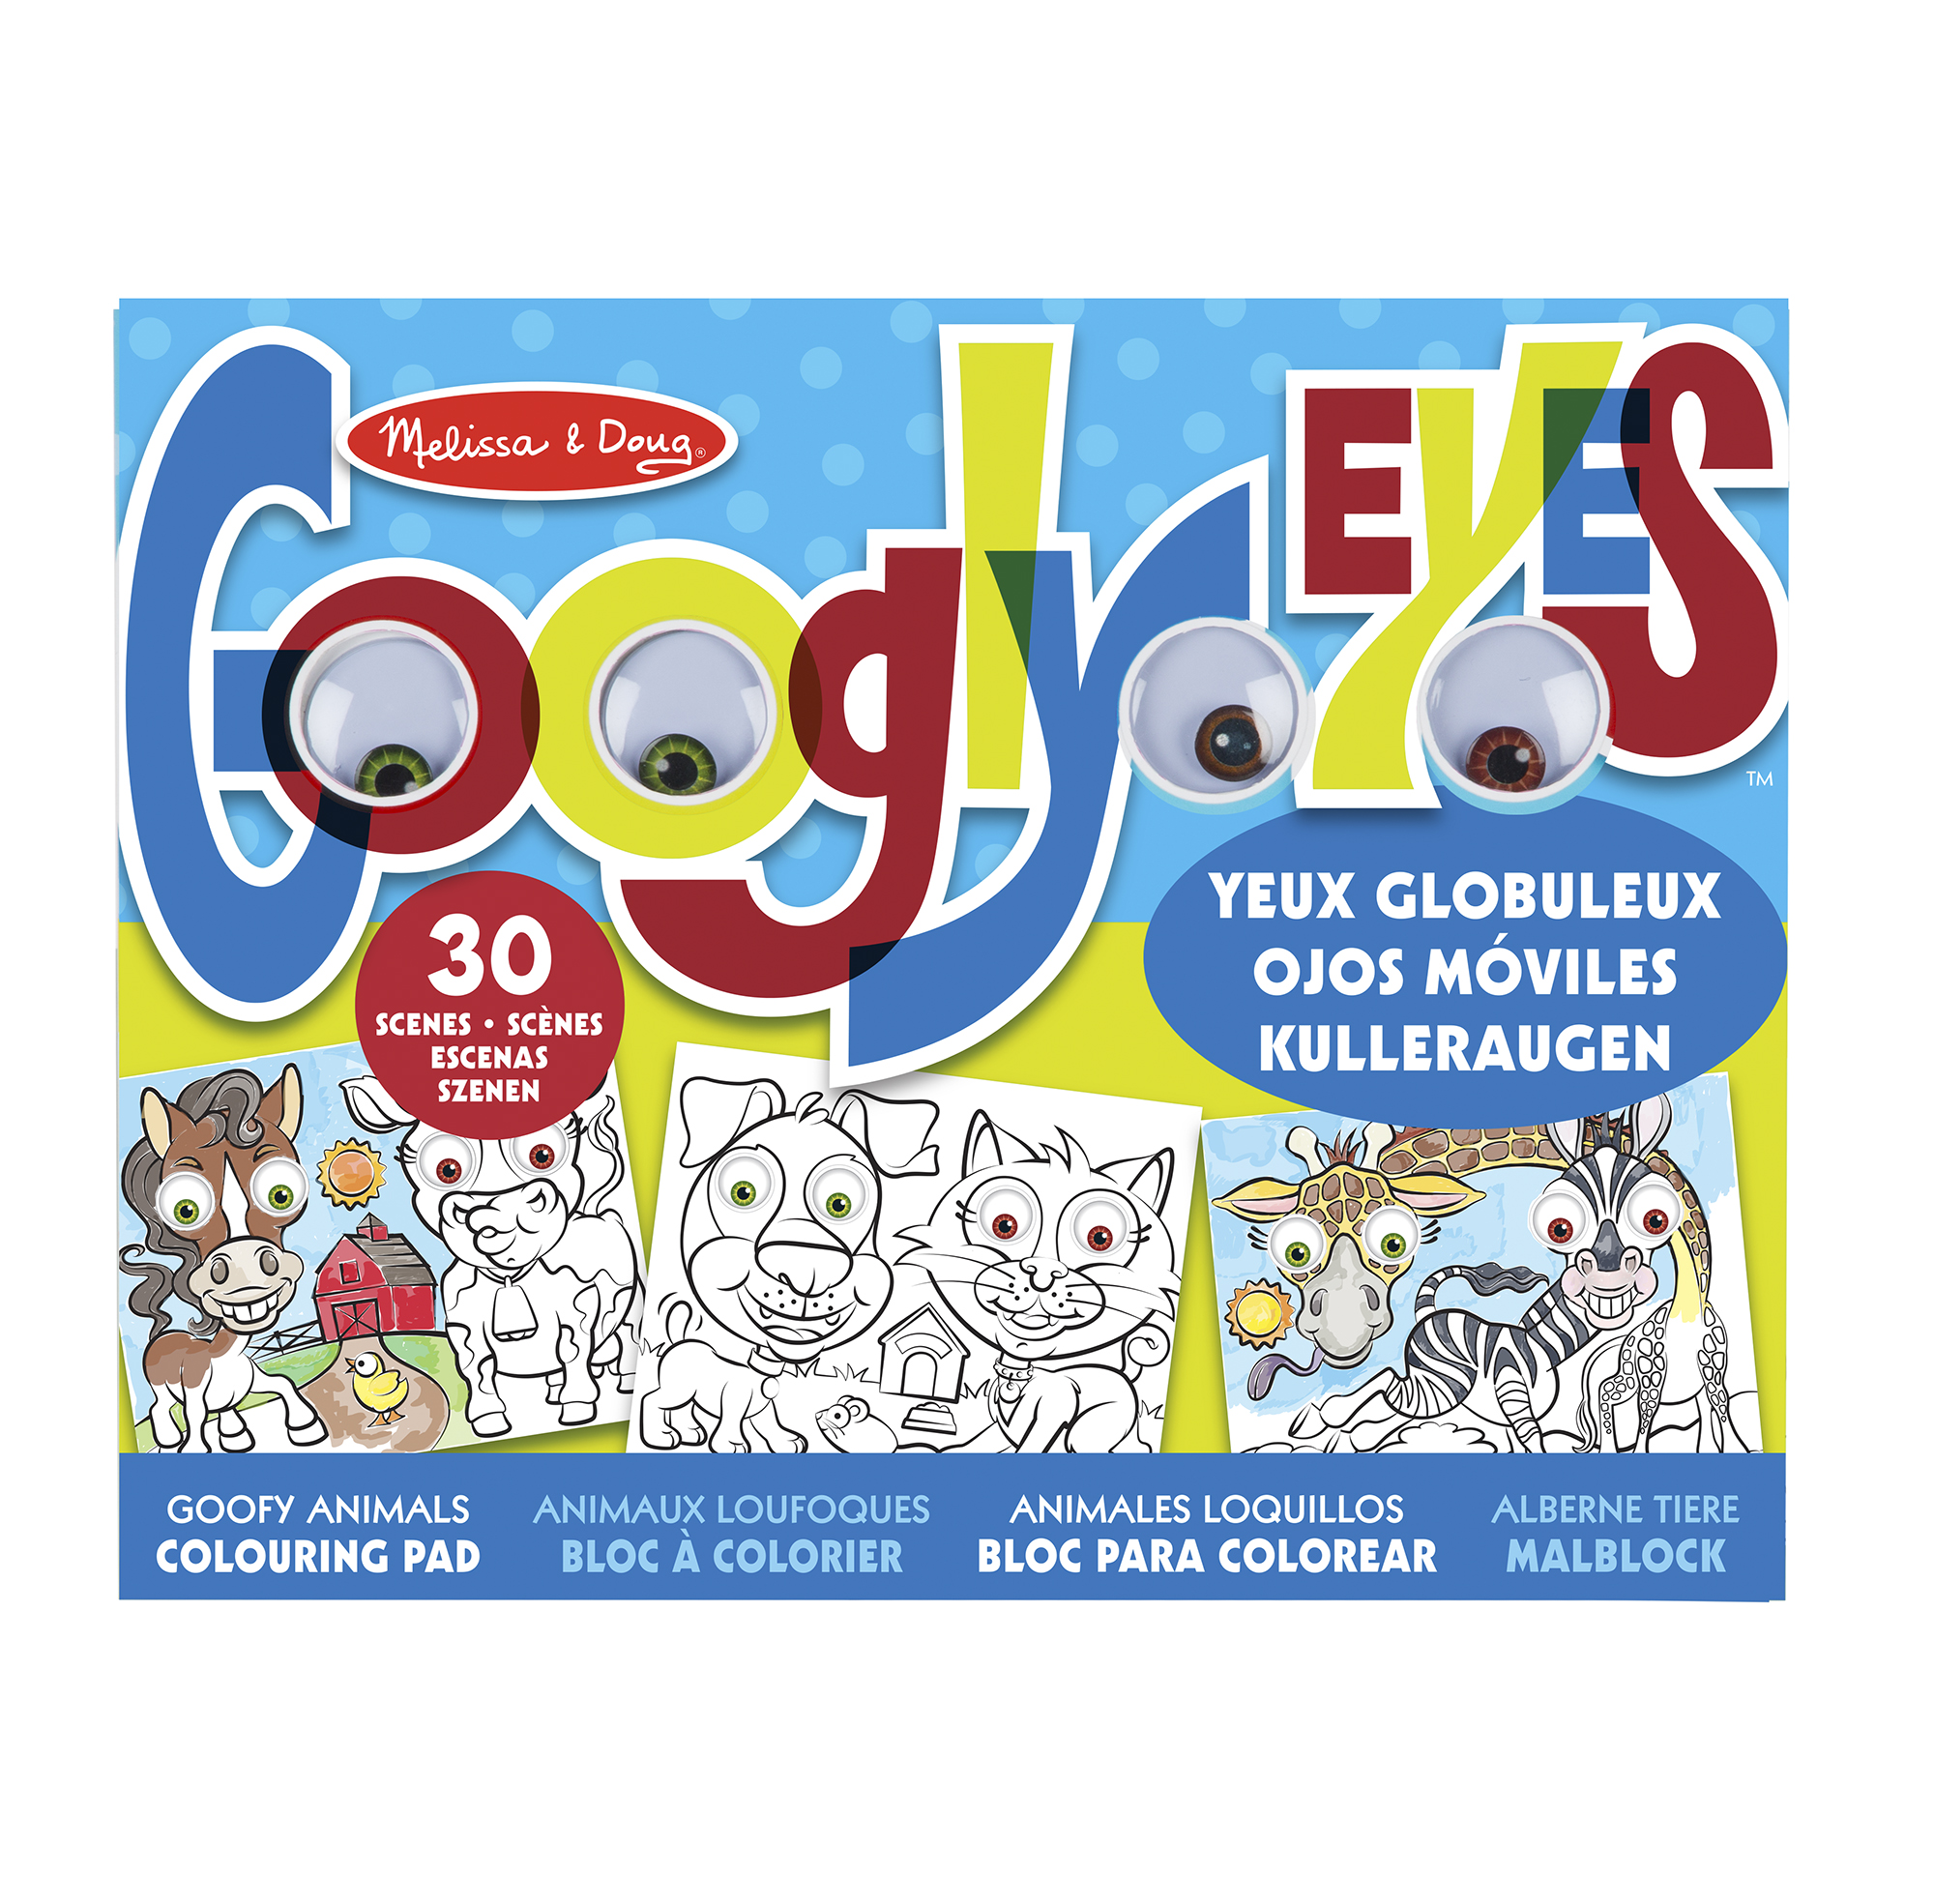 Googly Eyes Colouring Pad - Goofy Animals